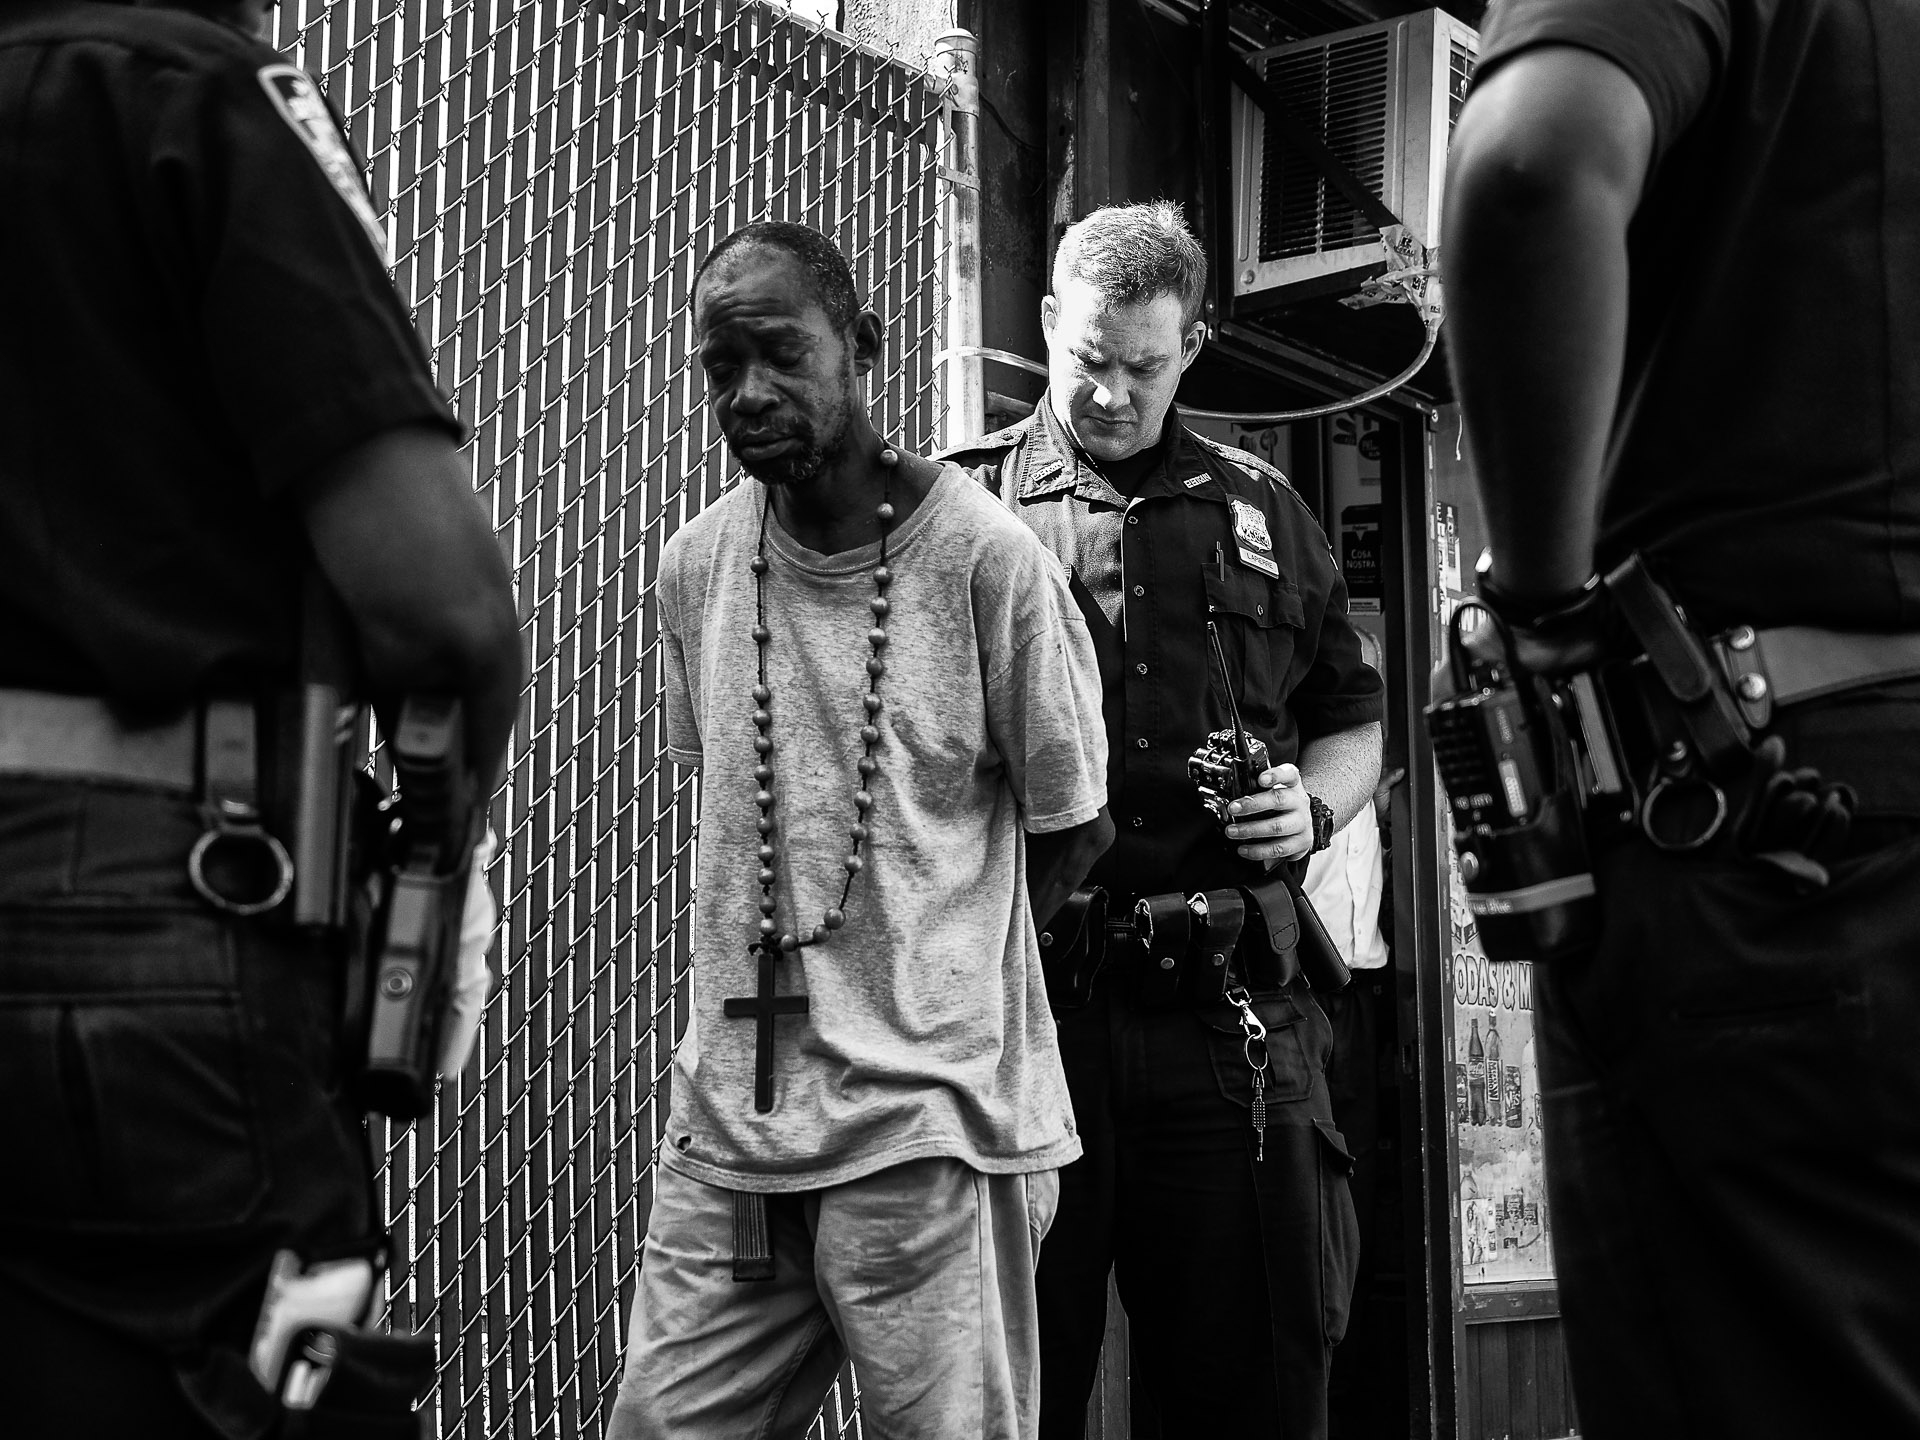 A man is arrested in an area of East Harlem that has experienced a surge in the use of synthetic marijuana, on Friday, September 18, 2015 in New York, N.Y.